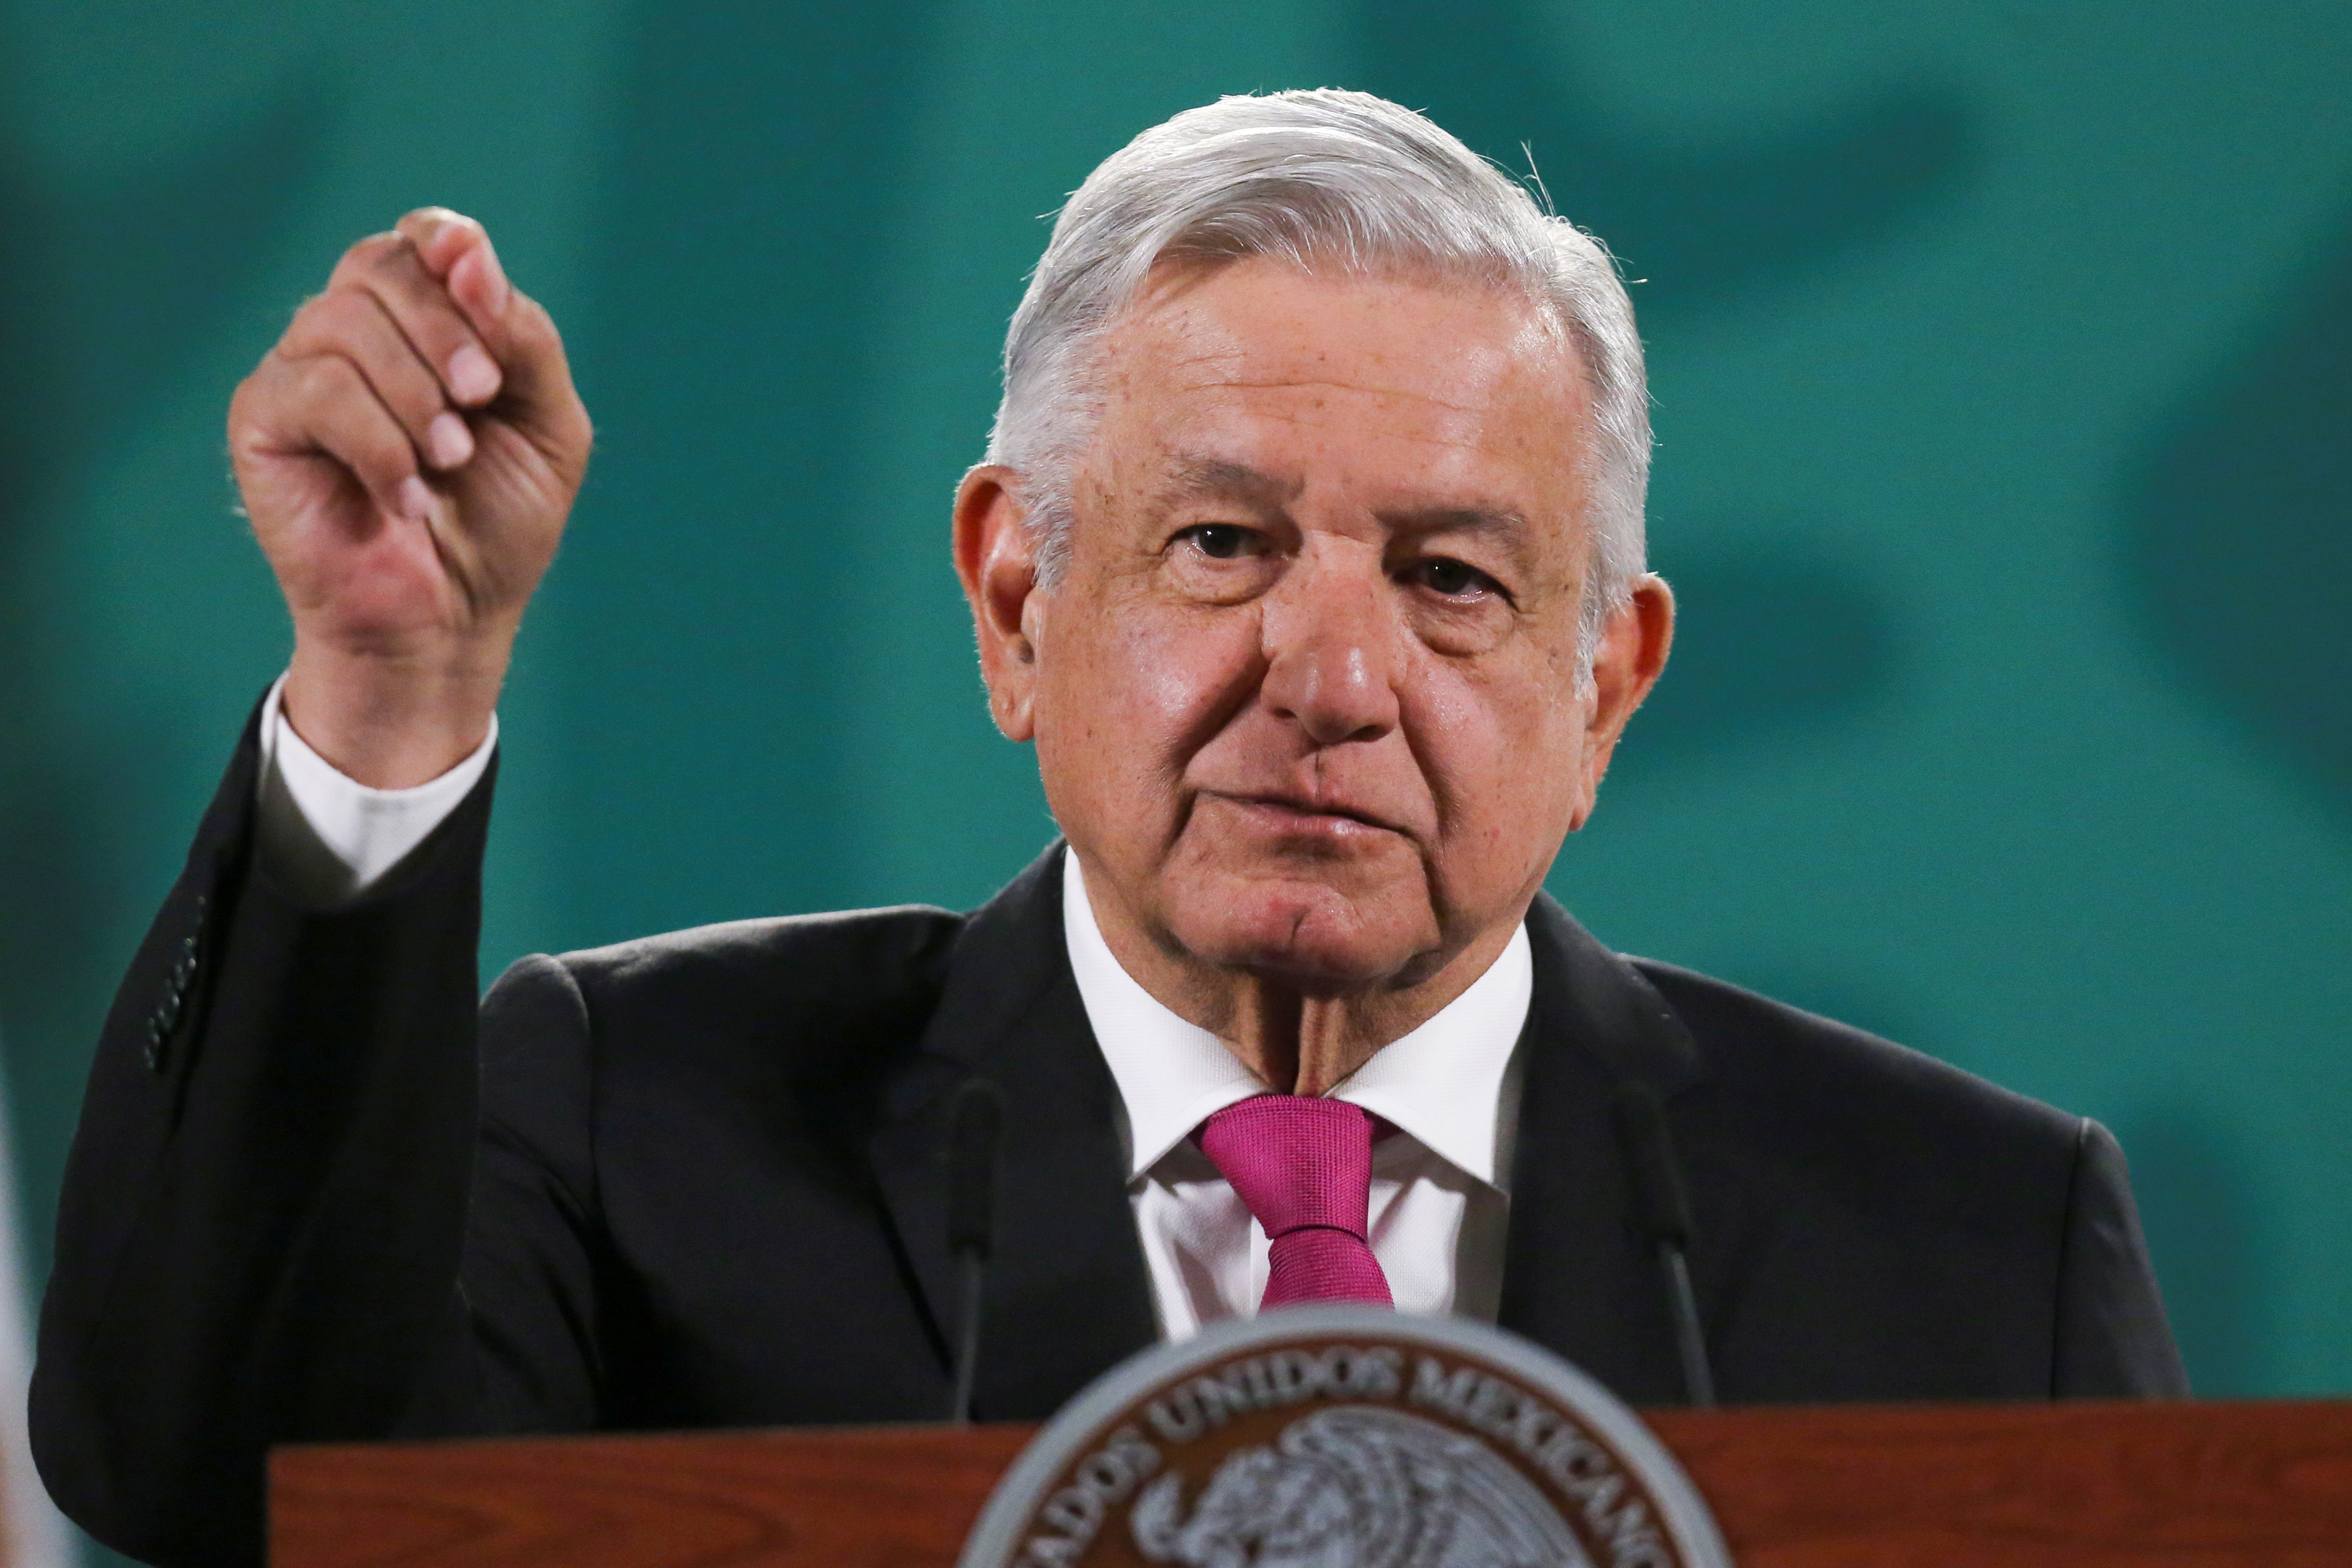 Mexico's President Andres Manuel Lopez Obrador speaks during a news conference at the National Palace in Mexico City, Mexico, April 13, 2021. REUTERS/Edgard Garrido